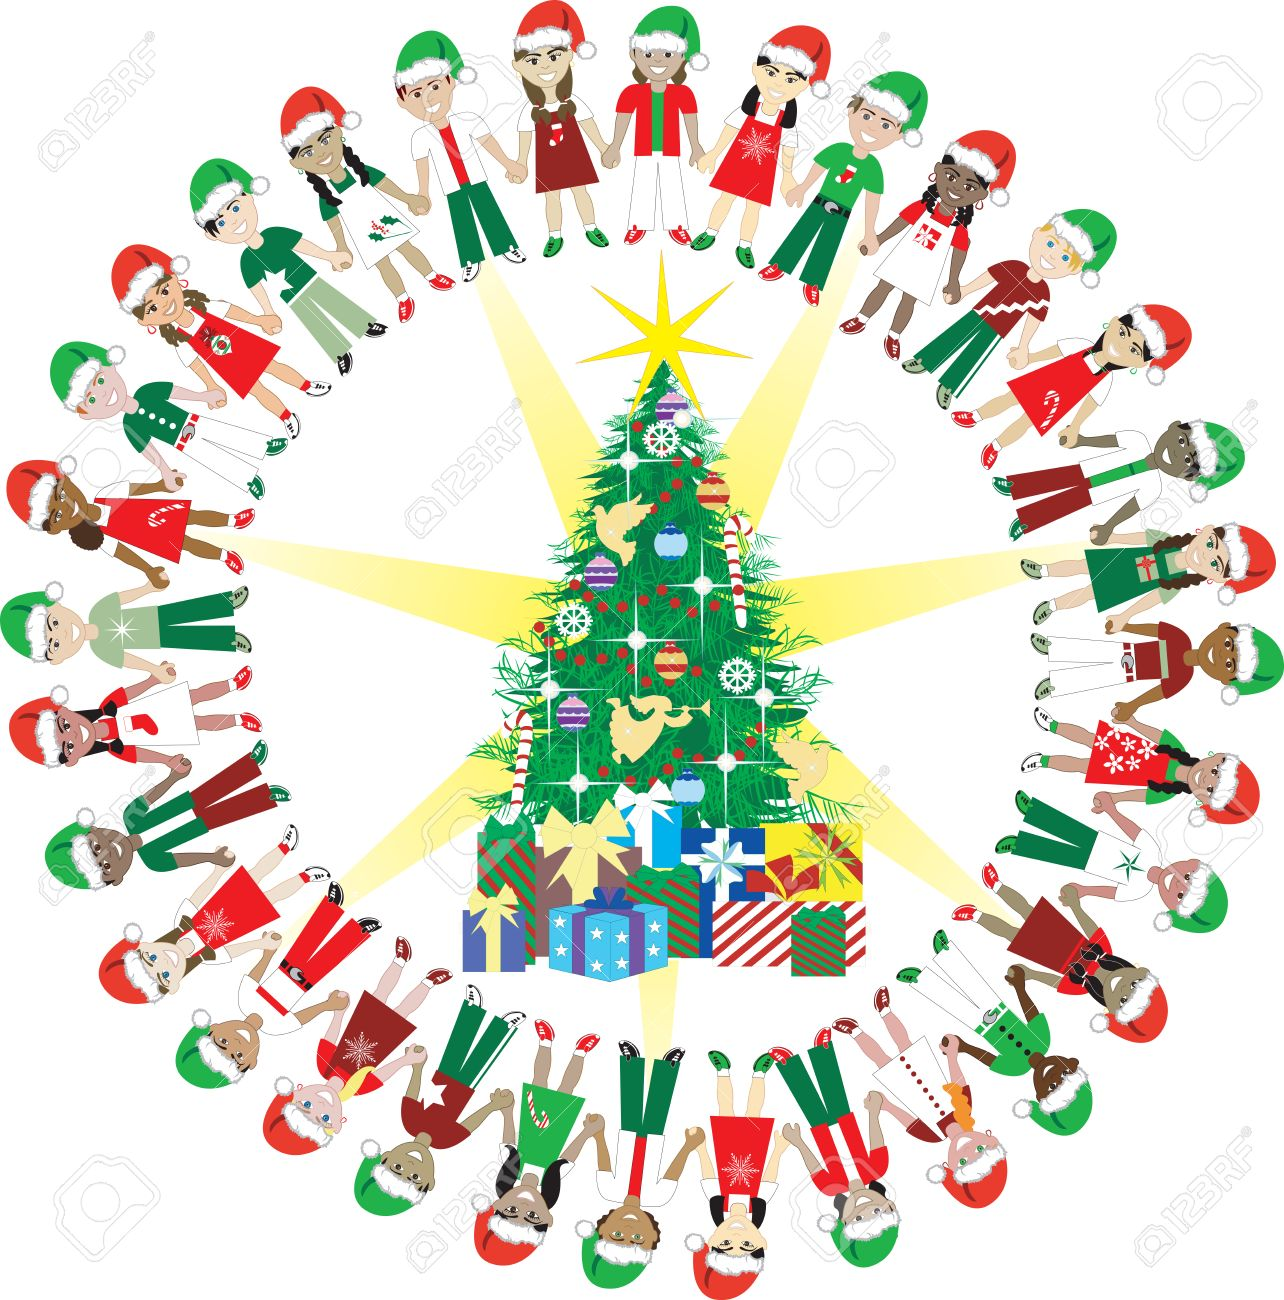 kids love christmas world 2 32 different children representing rh 123rf com Christmas around the World Printables Holidays Around the World Clip Art